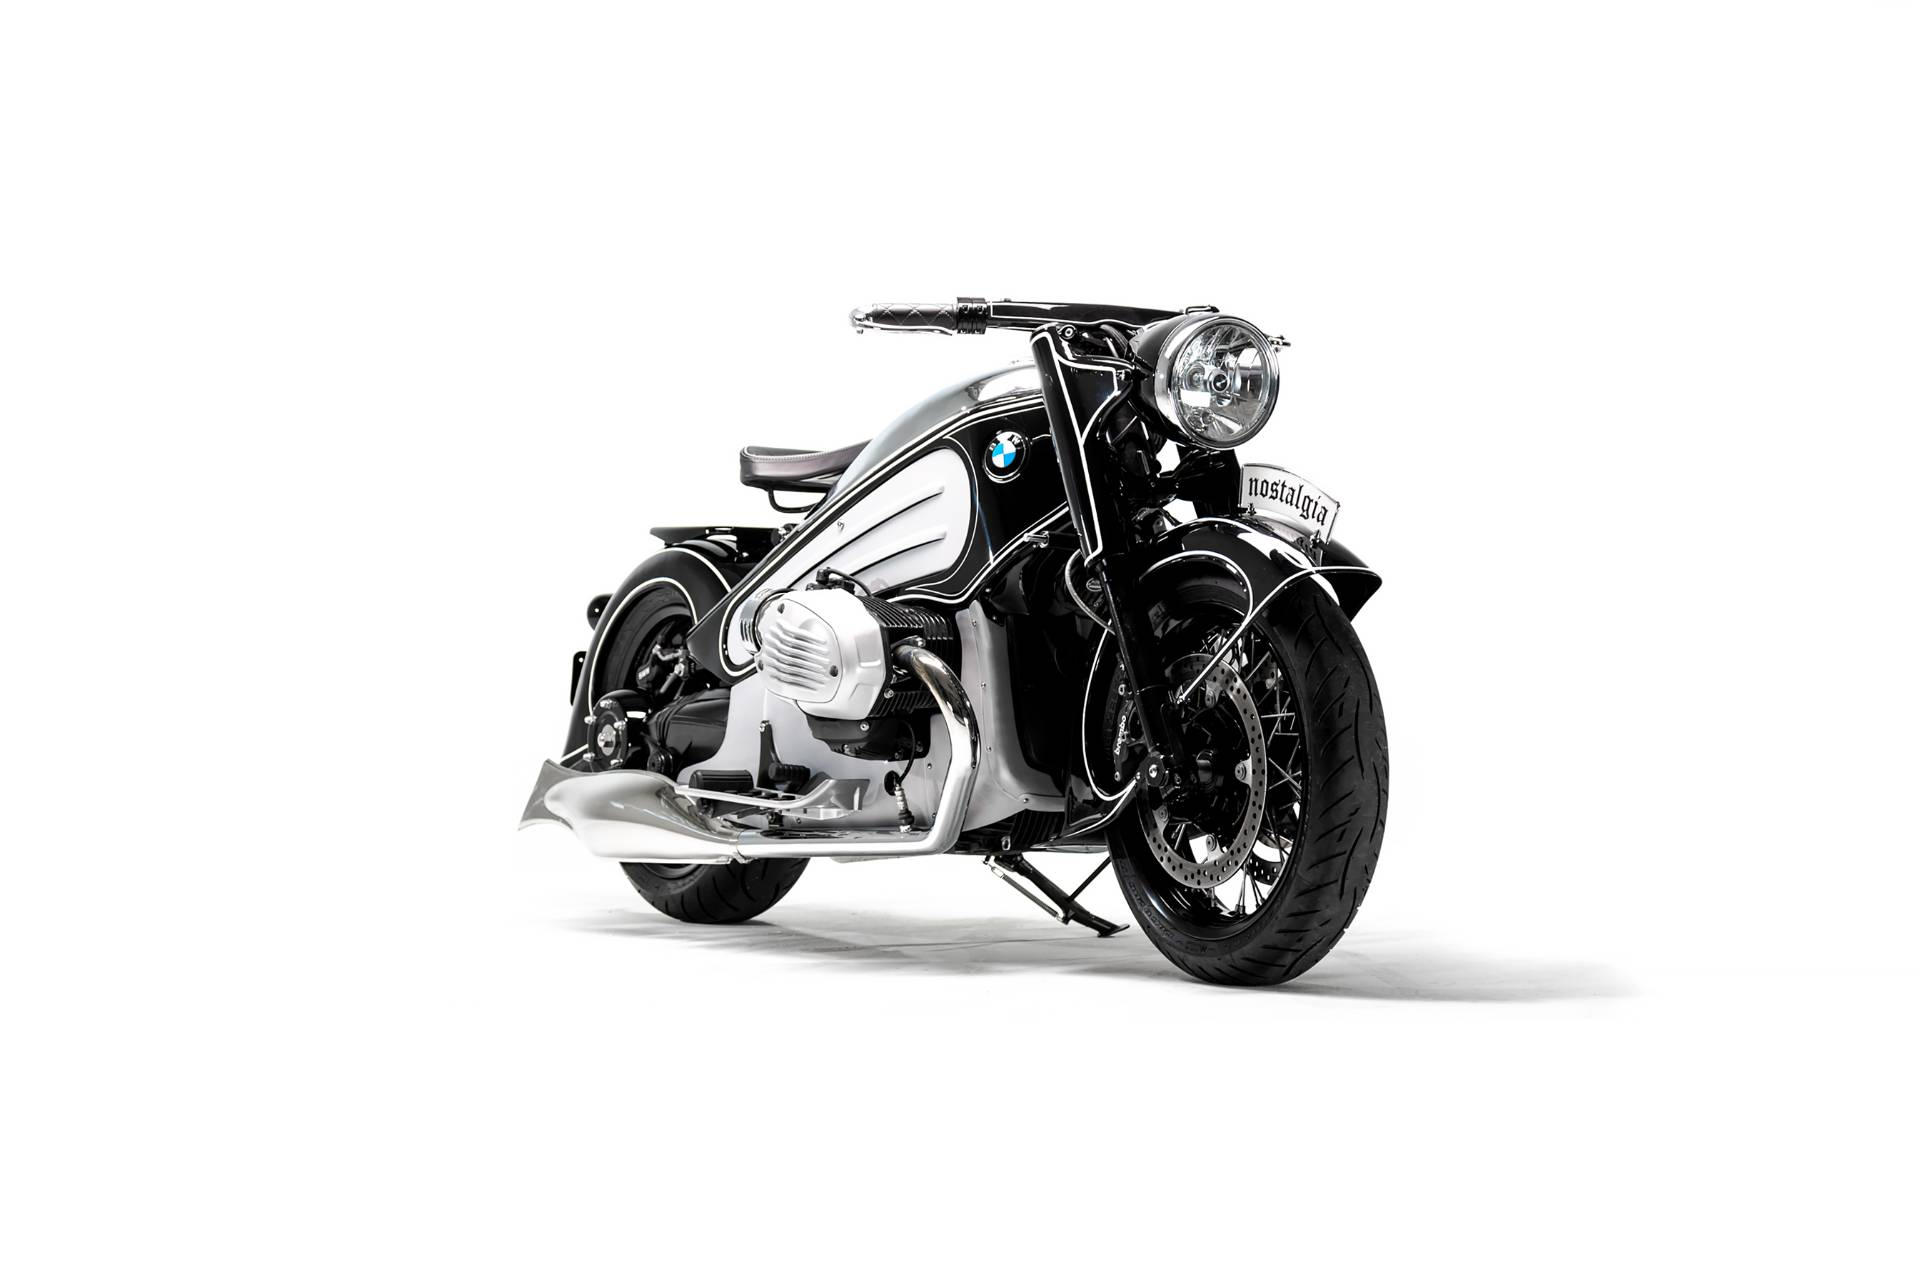 New 2019 BMW Nostalgia for sale, BMW Motorcycle Nostalgia, new BMW Motorcycle, Vintage, R7, BMW Motorcycles of Miami, Motorcycles of Miami, Motorcycles Miami - Photo 40